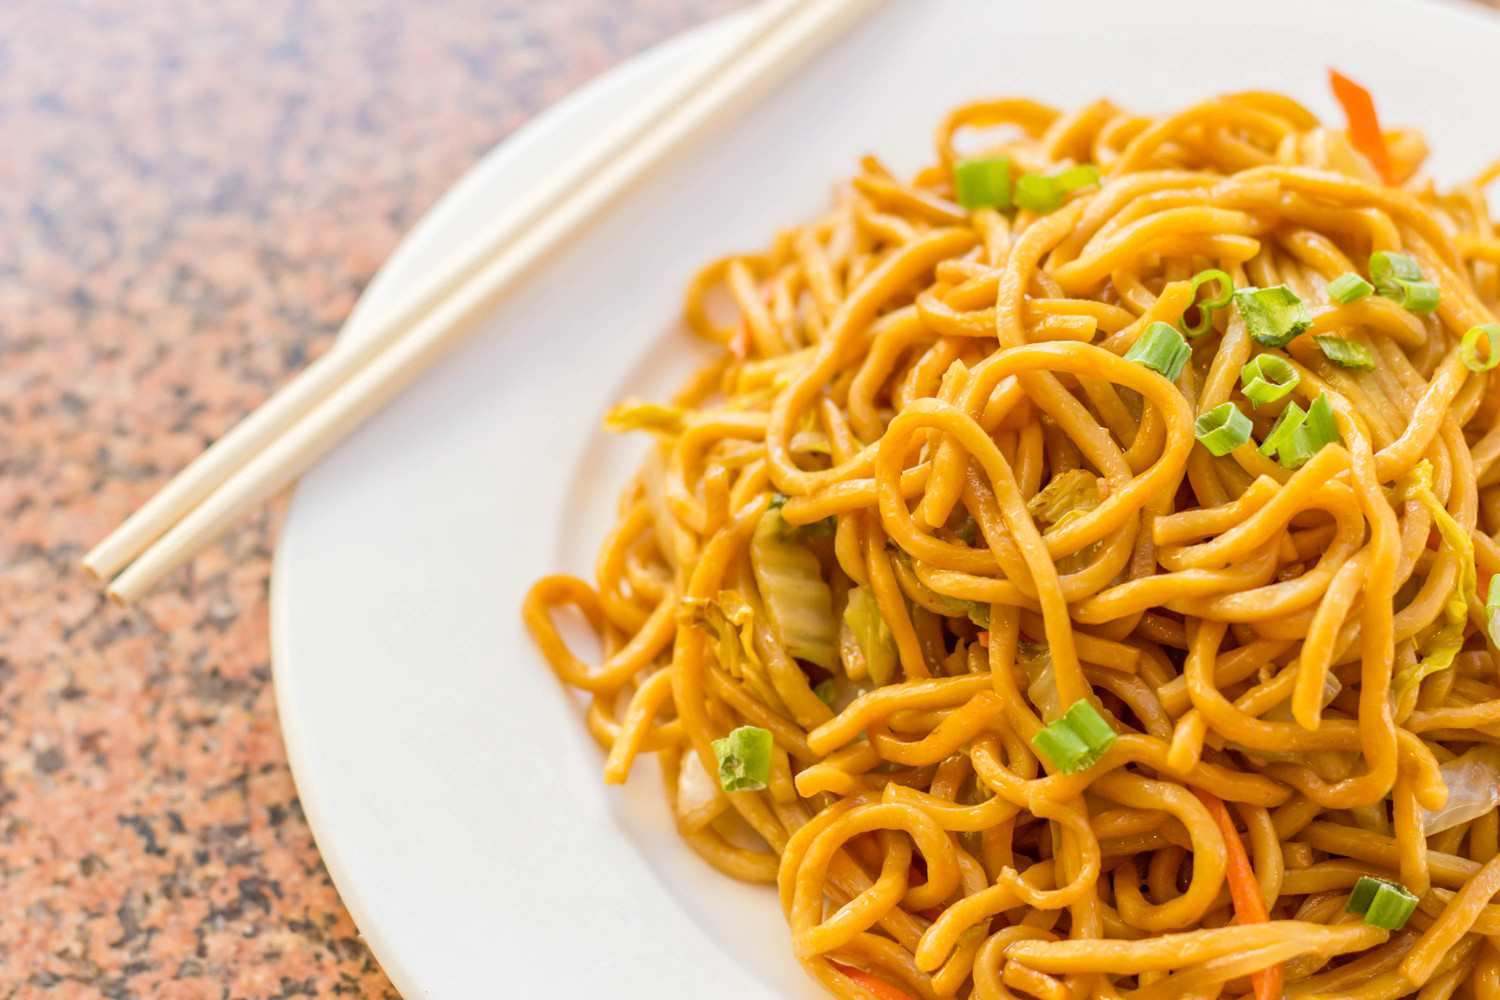 Noodles are a traditional food for Chinese New Year: their length symbolizes longevity.